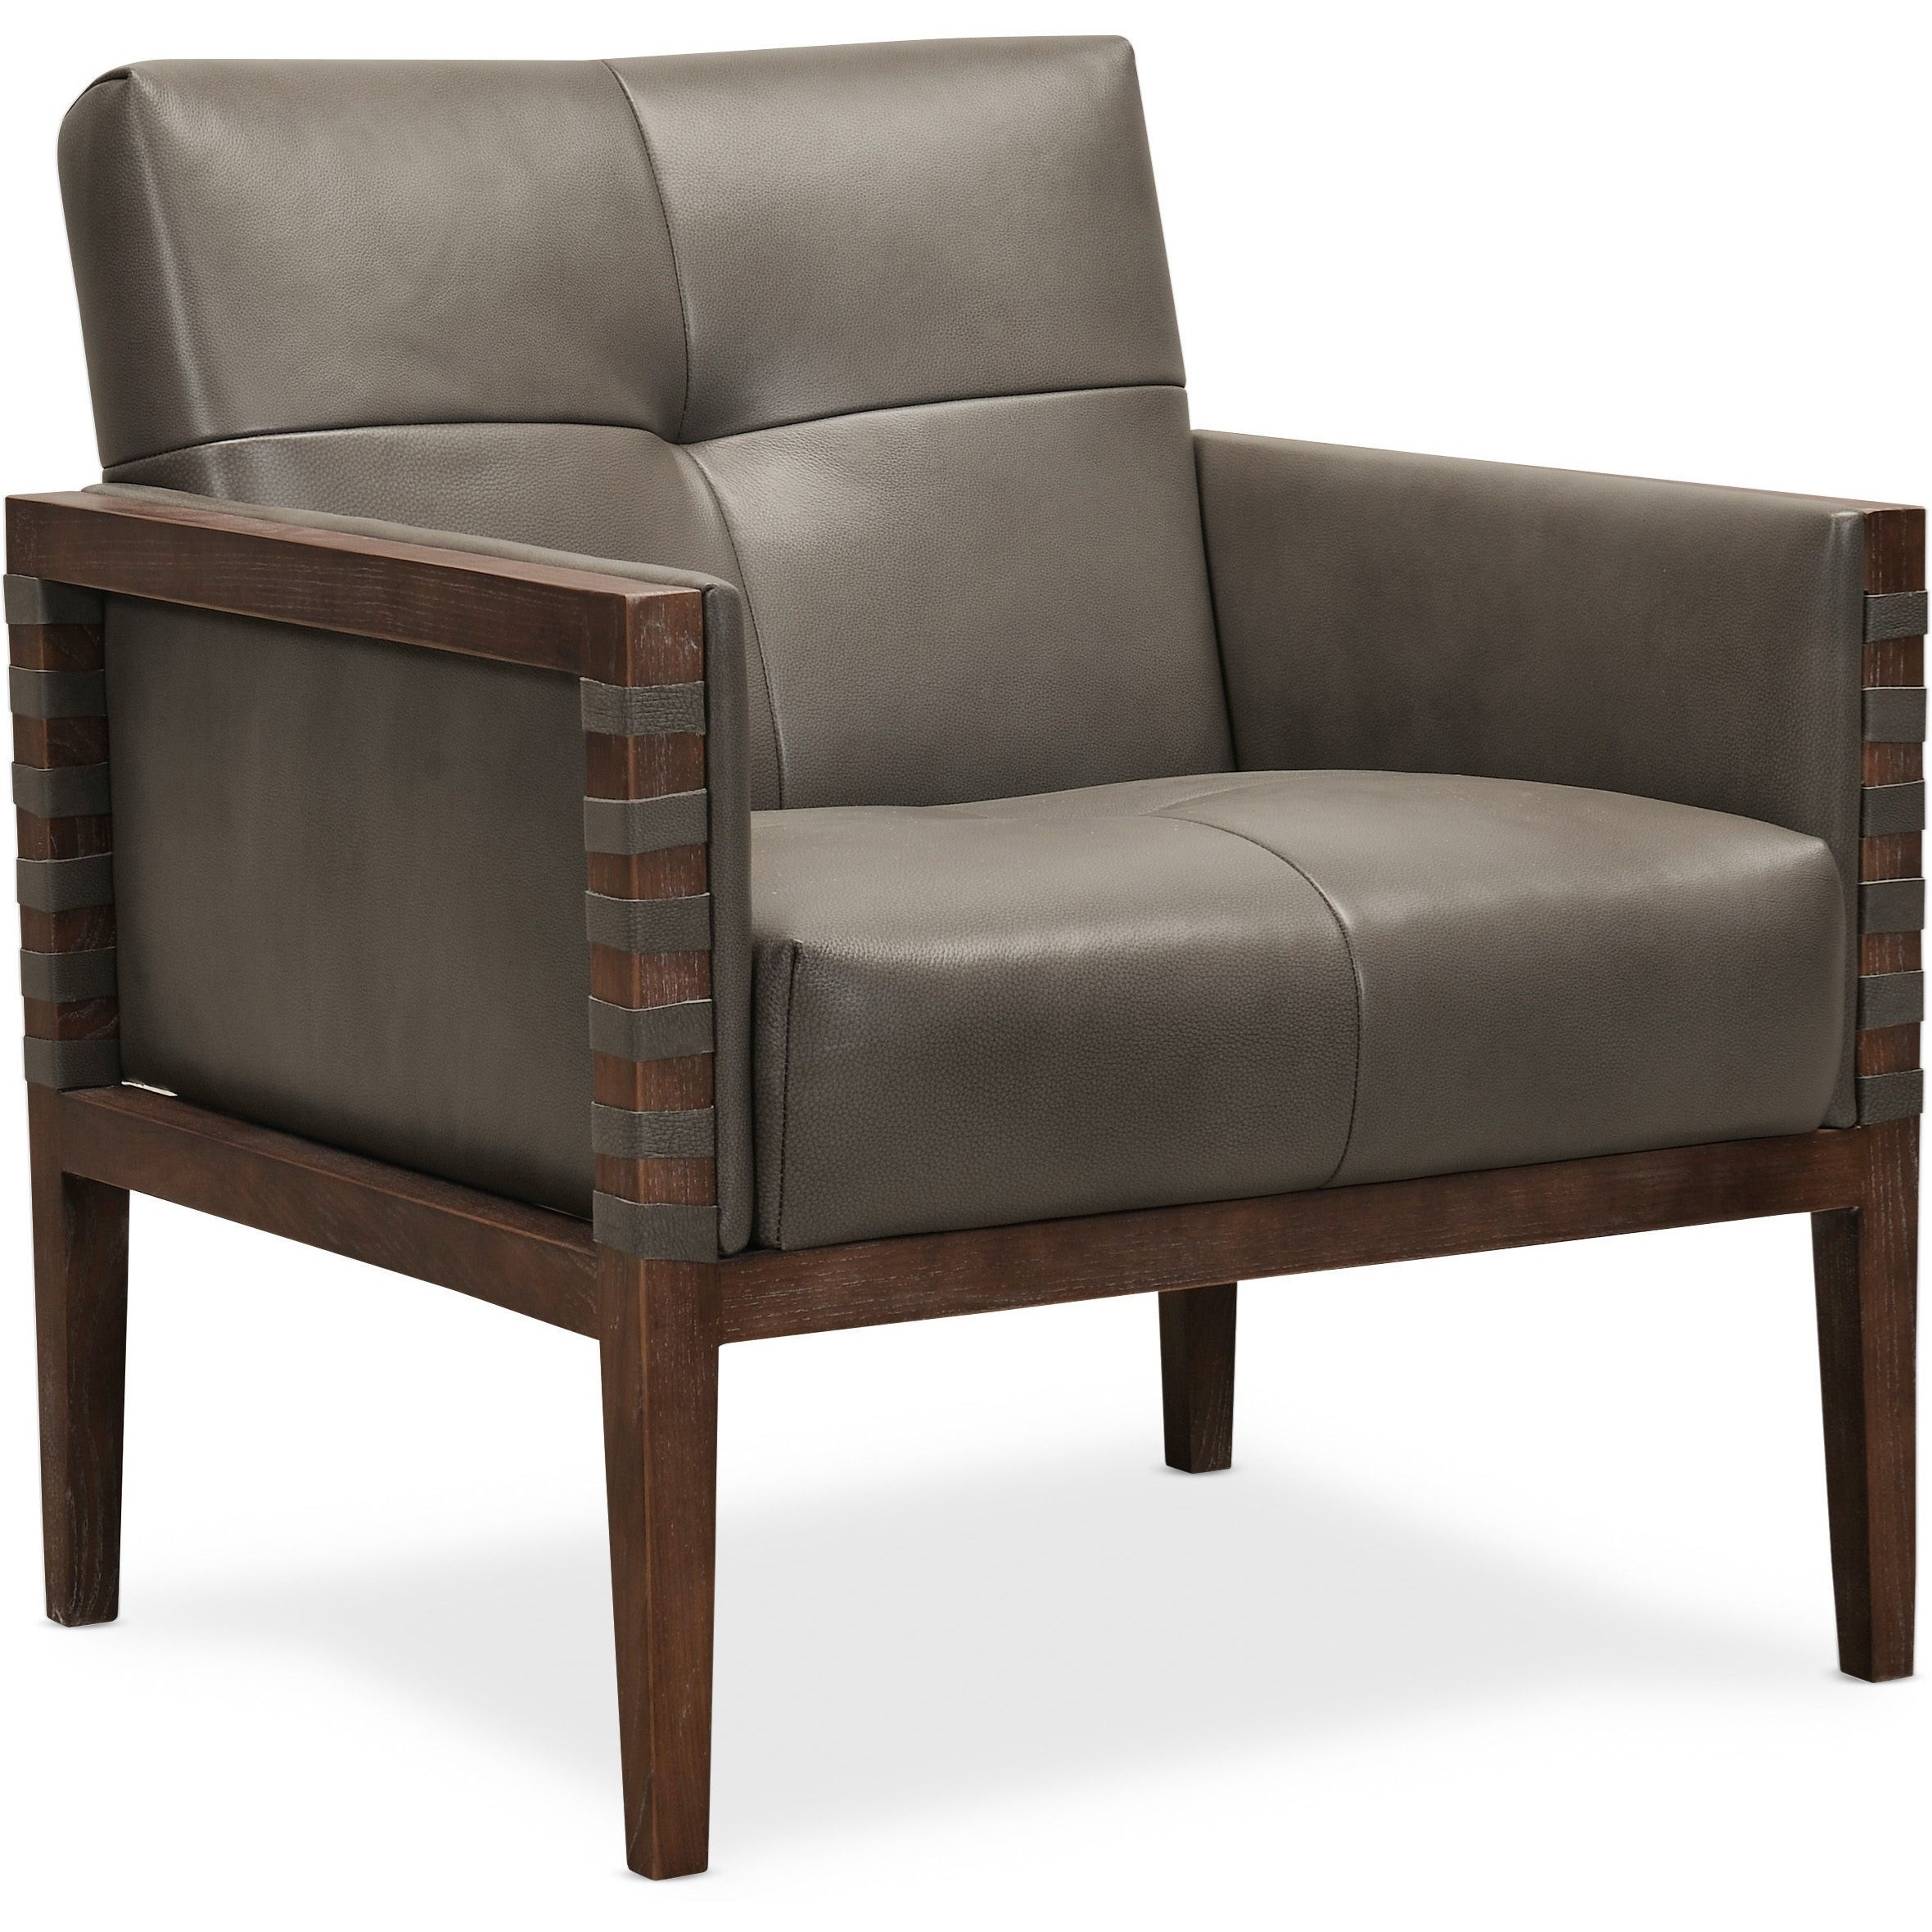 Carverdale Leather Club Chair w/ Wood Frame by Hooker Furniture at Baer's Furniture